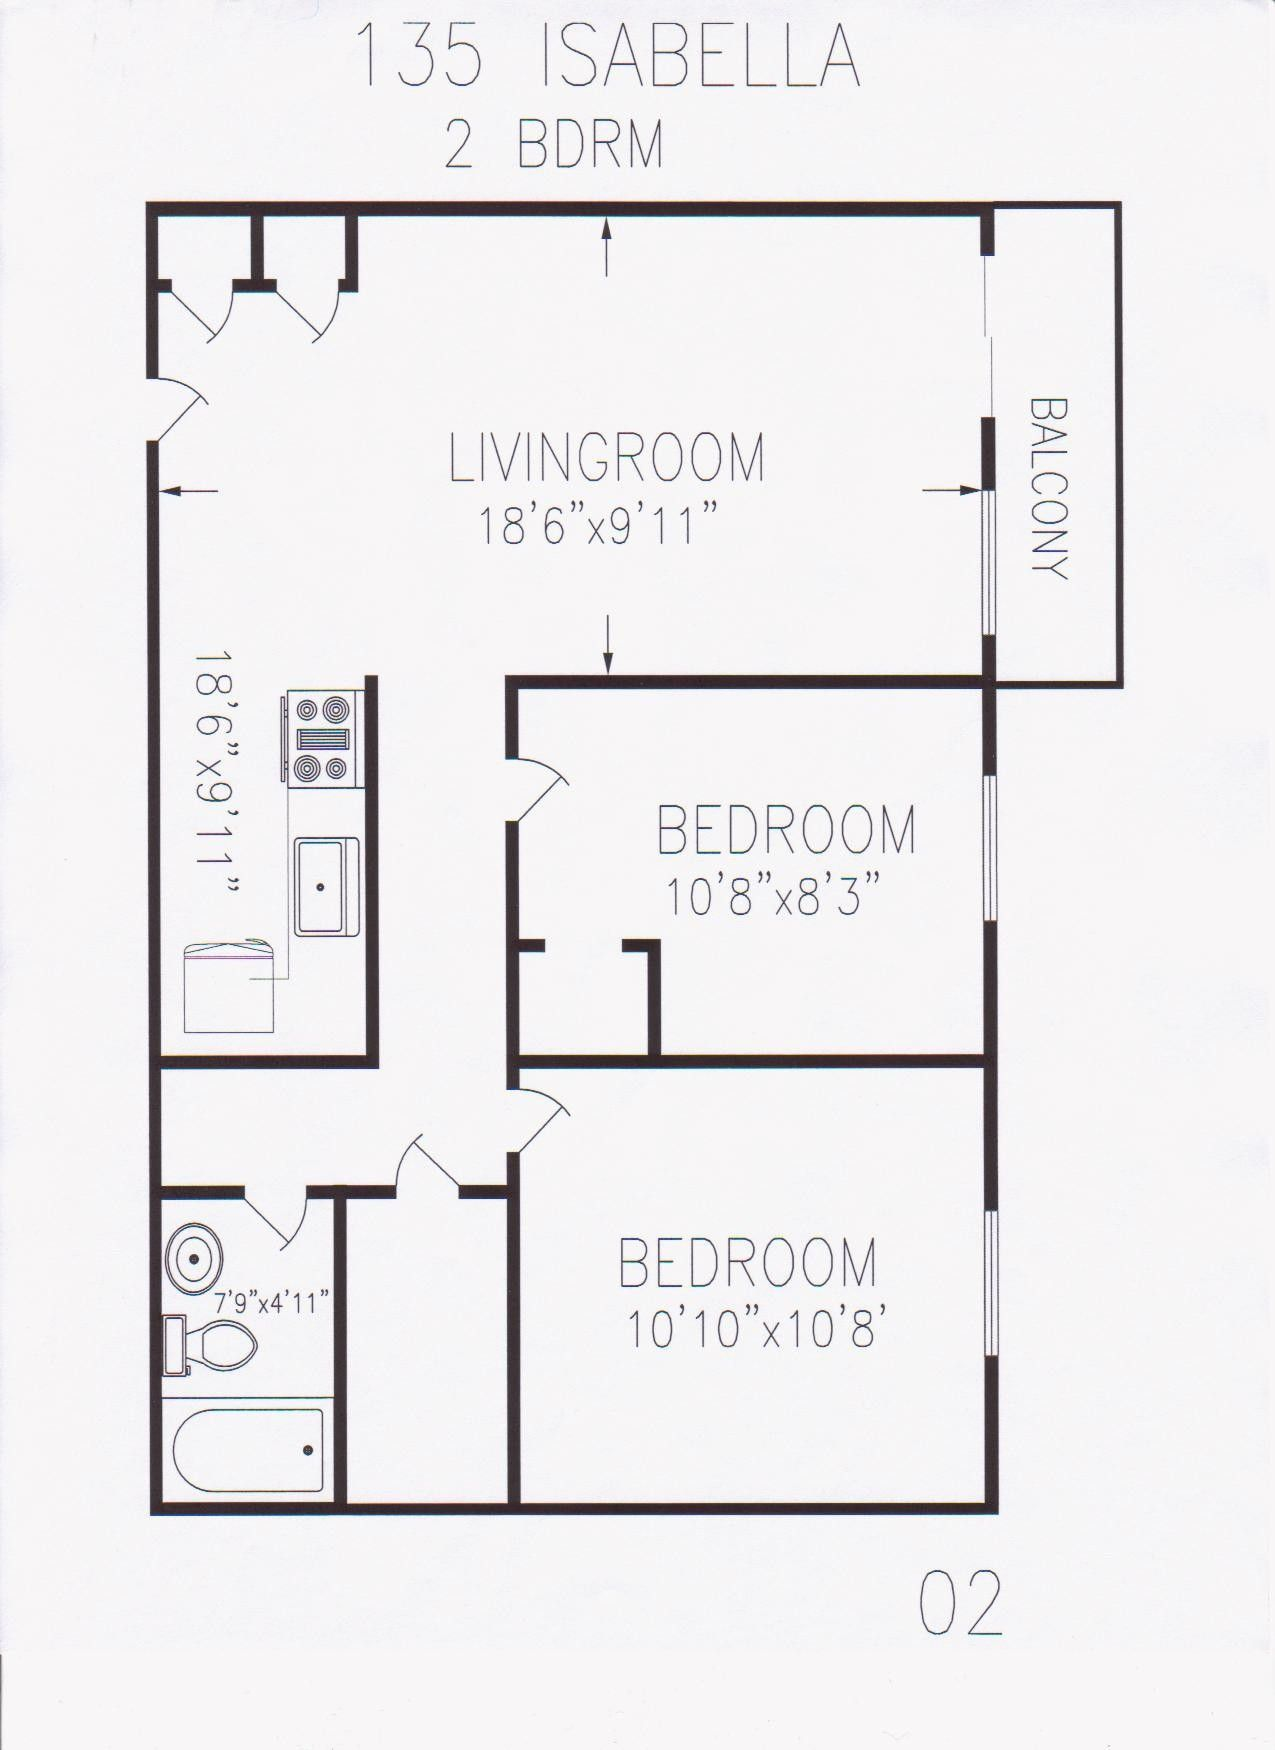 5000 Square Foot House Floor Plans Small House Plans House Plans One Storey House